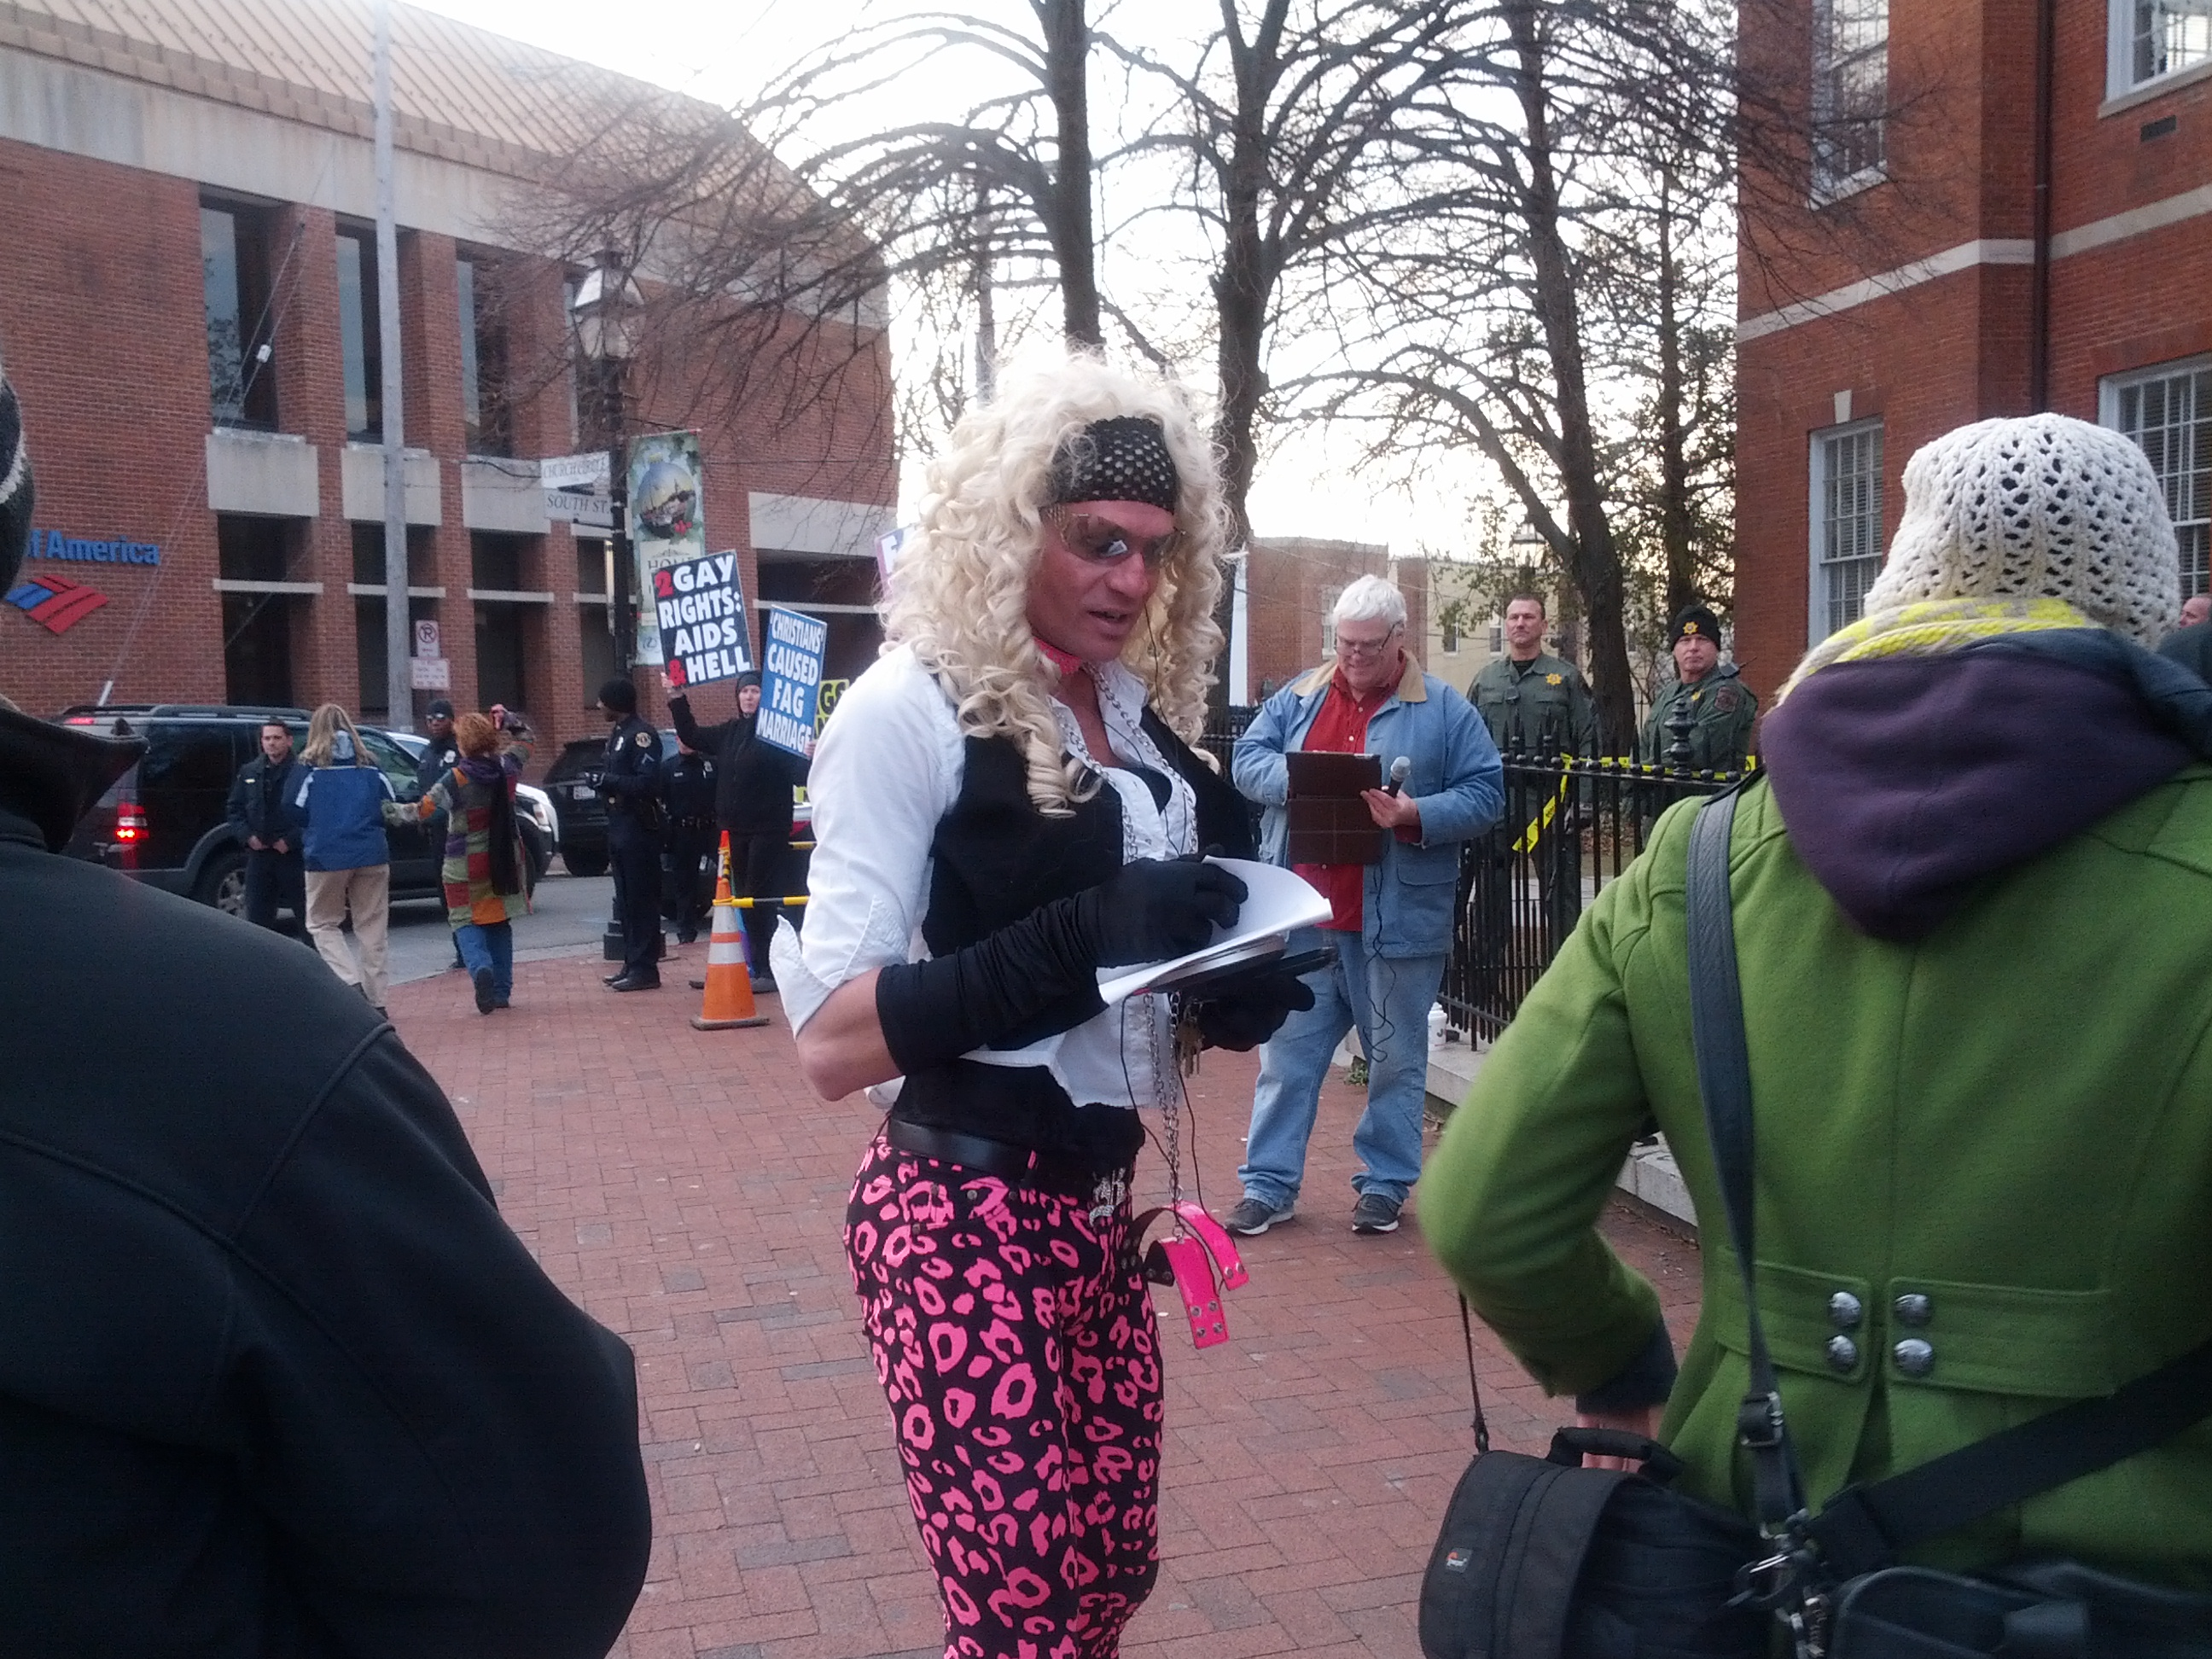 Dale Crites posed and danced near the WBC protesters, drawing lots of cheers from the counter-protest crowd.